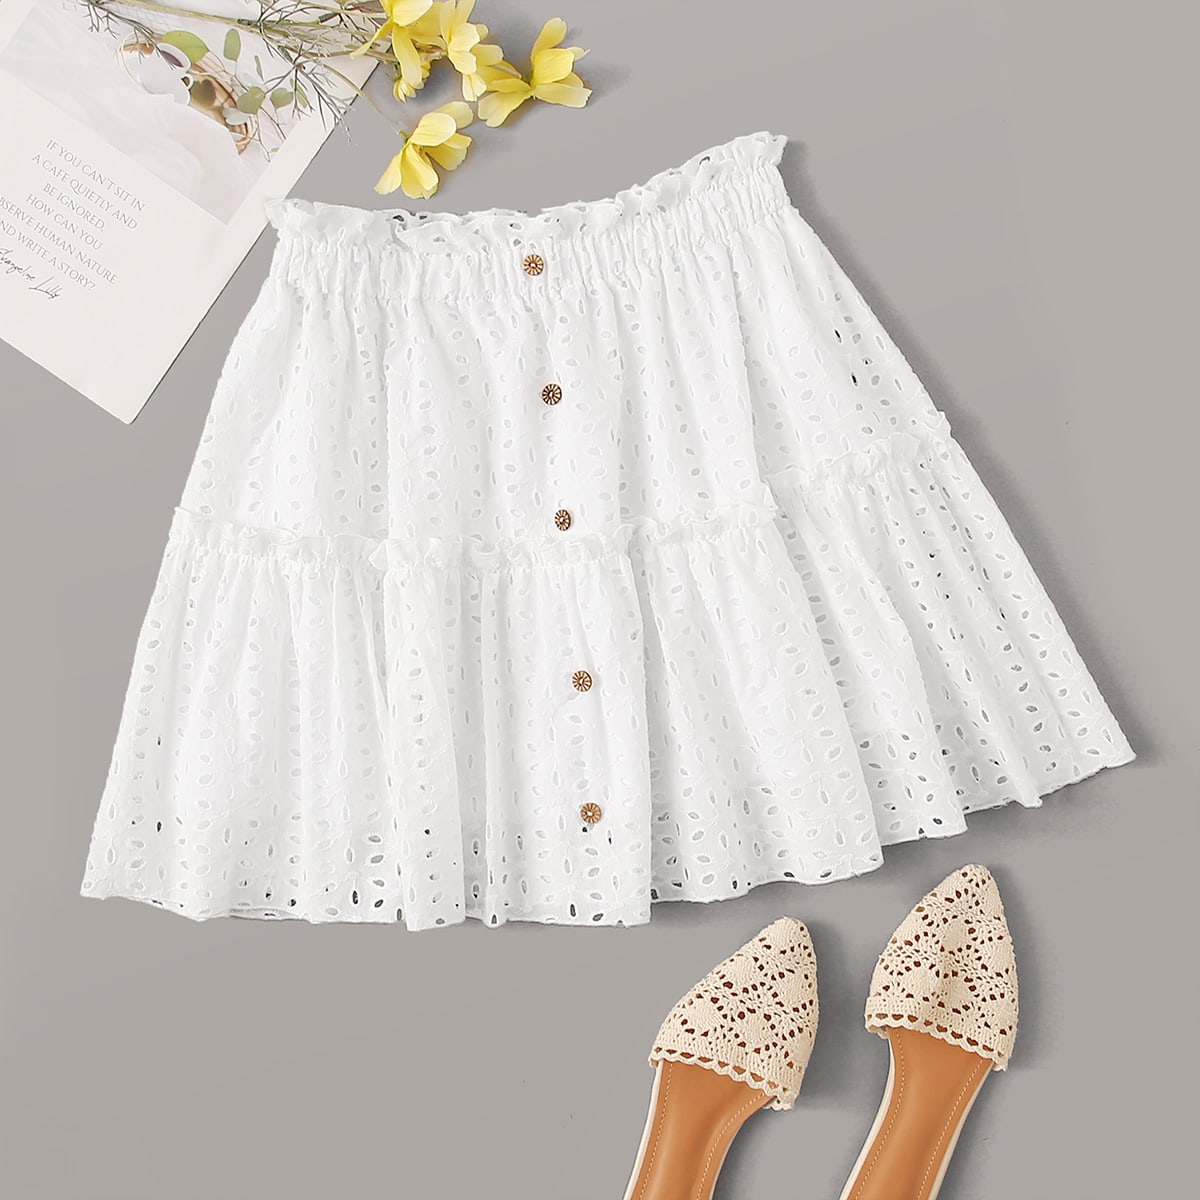 Ruffle Waist Buttoned Front Eyelet Embroidery Skirt